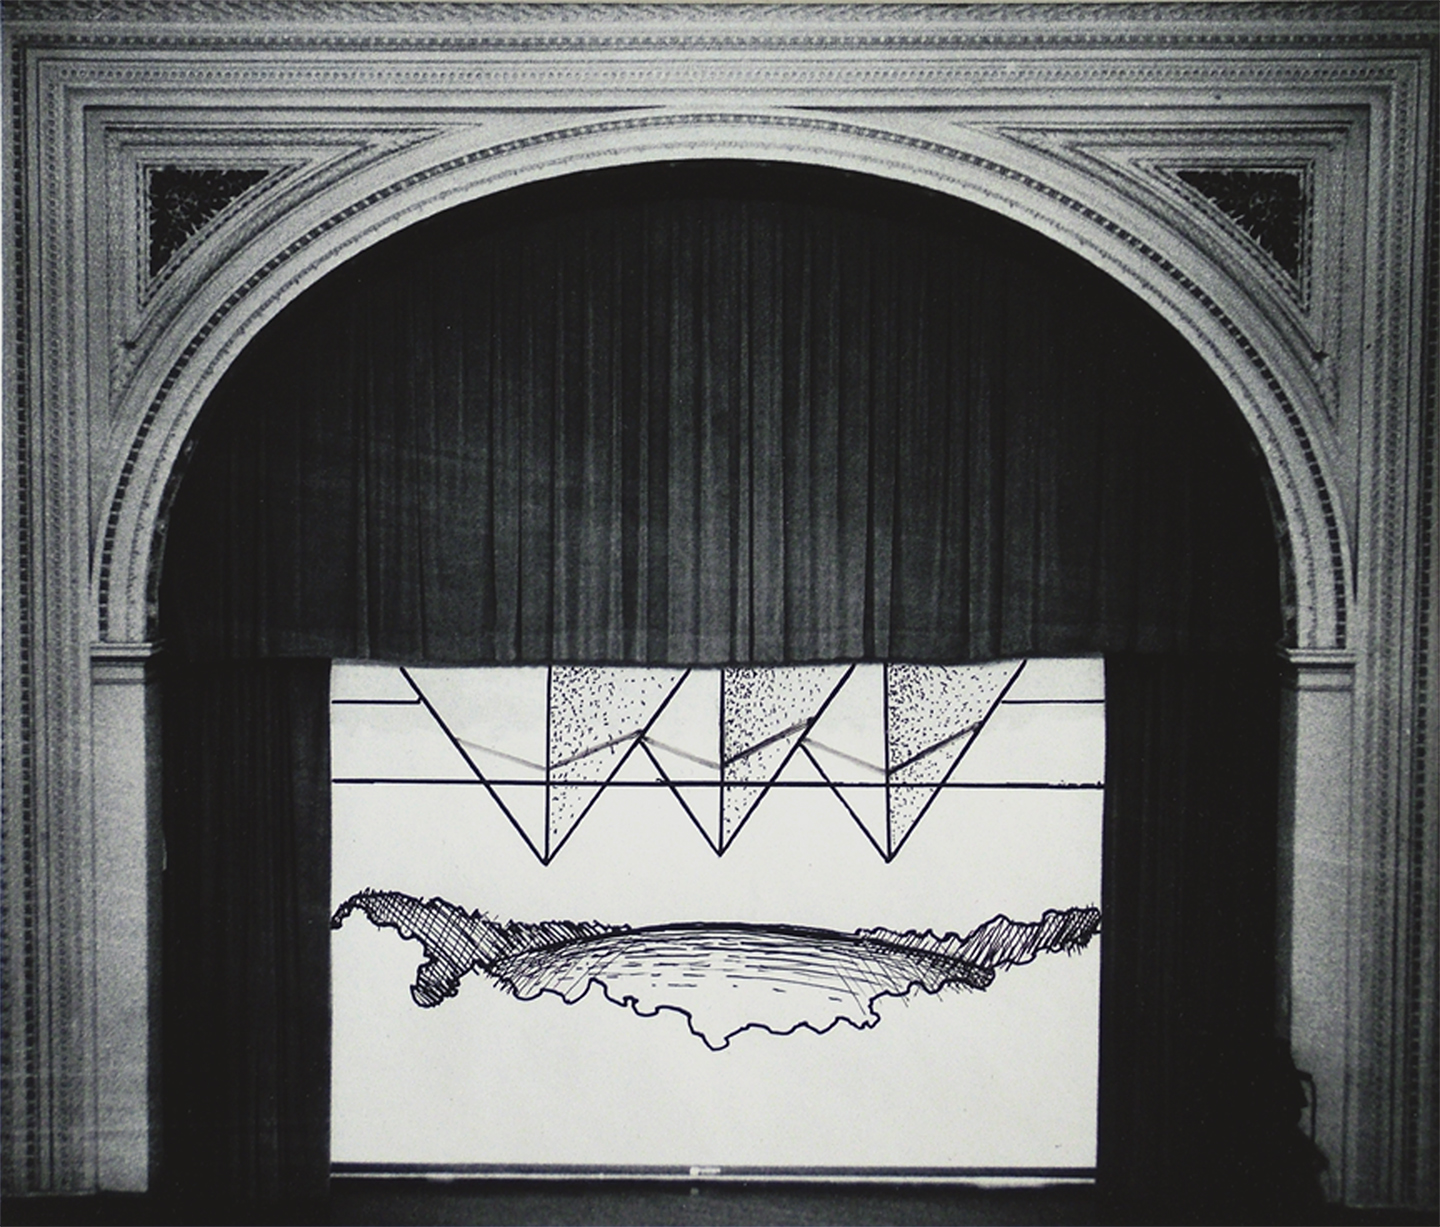 "Fullerton Hall Stage No. 1, 1968  10"" x 12"" Ink on photograph"